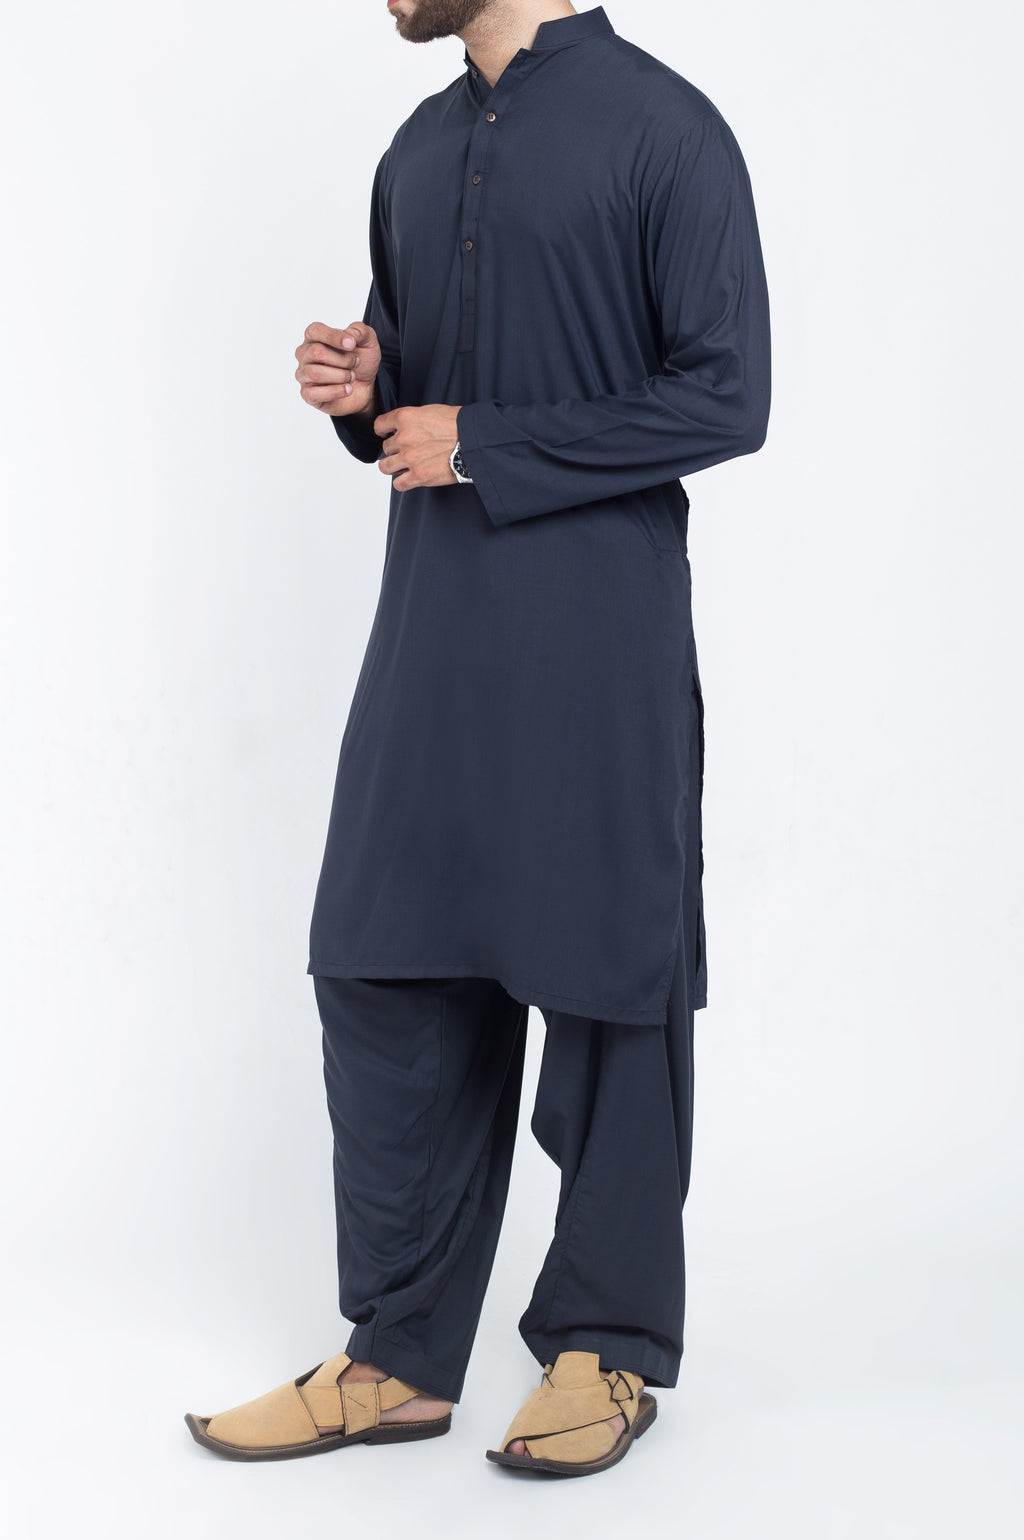 Image of   in Navy Blue SKU: RQ-39303-Large-Navy Blue